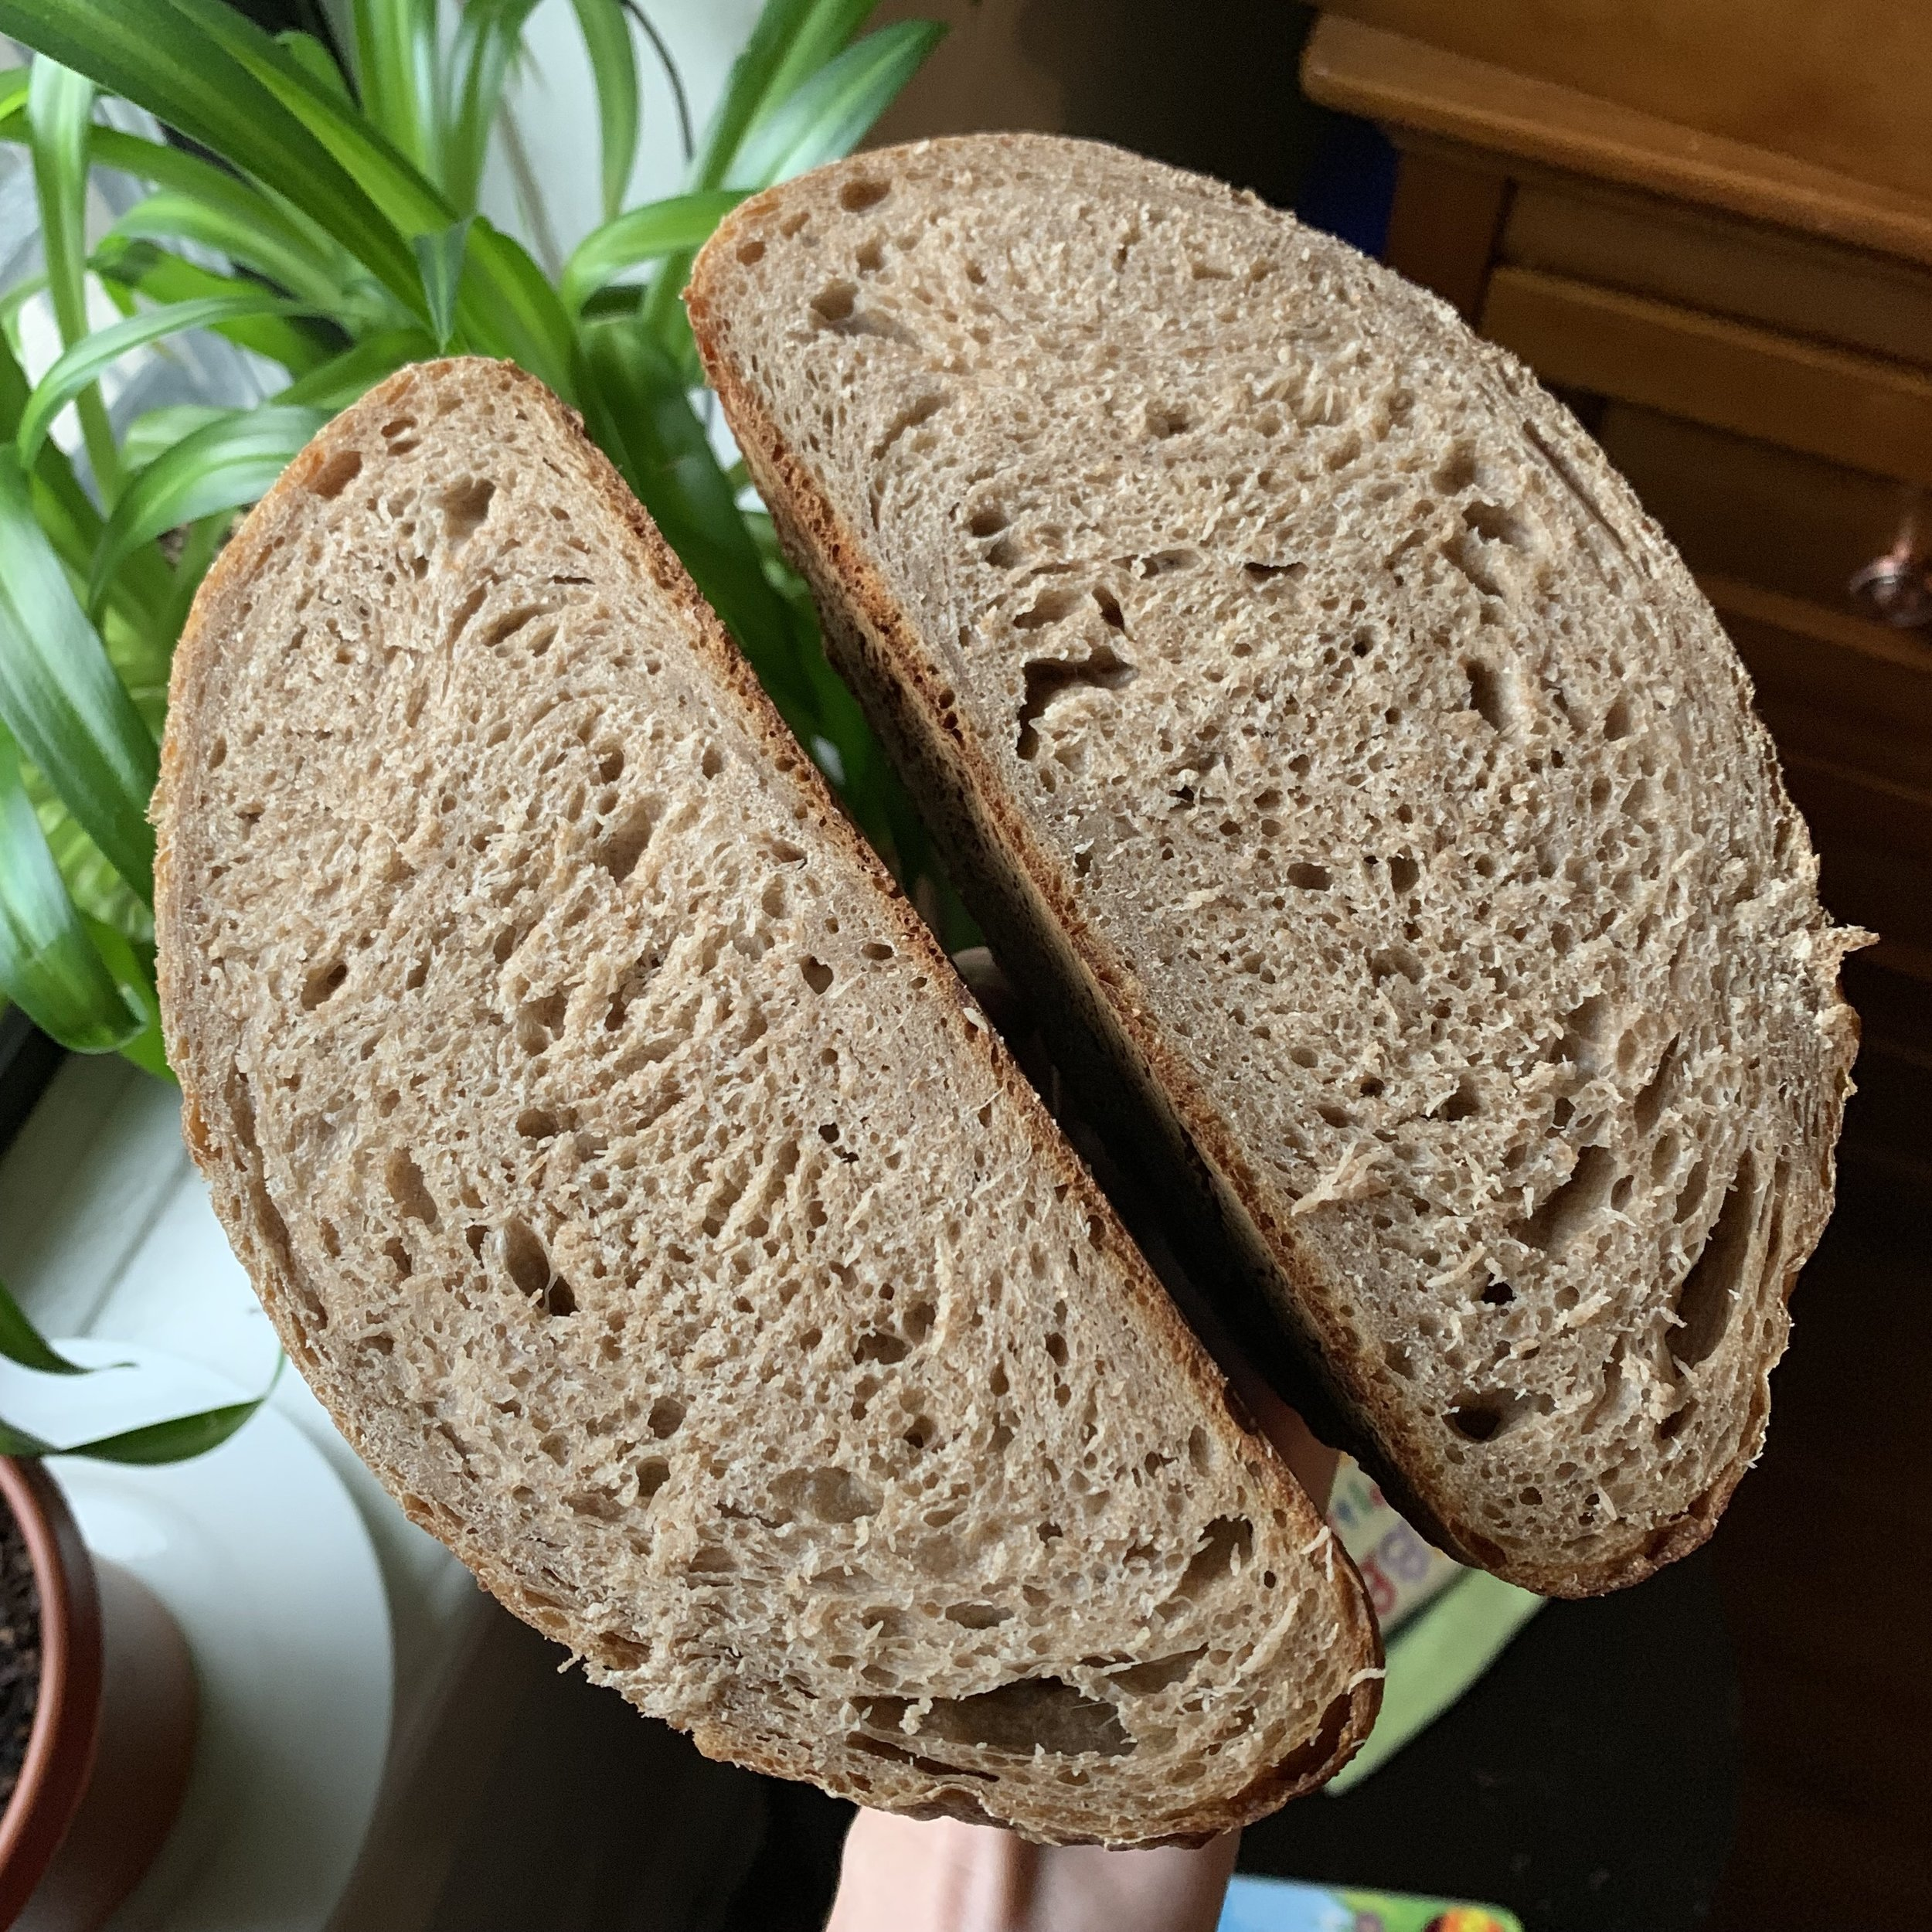 This loaf is made from 500g unbleached white flour and 500g whole wheat flour.